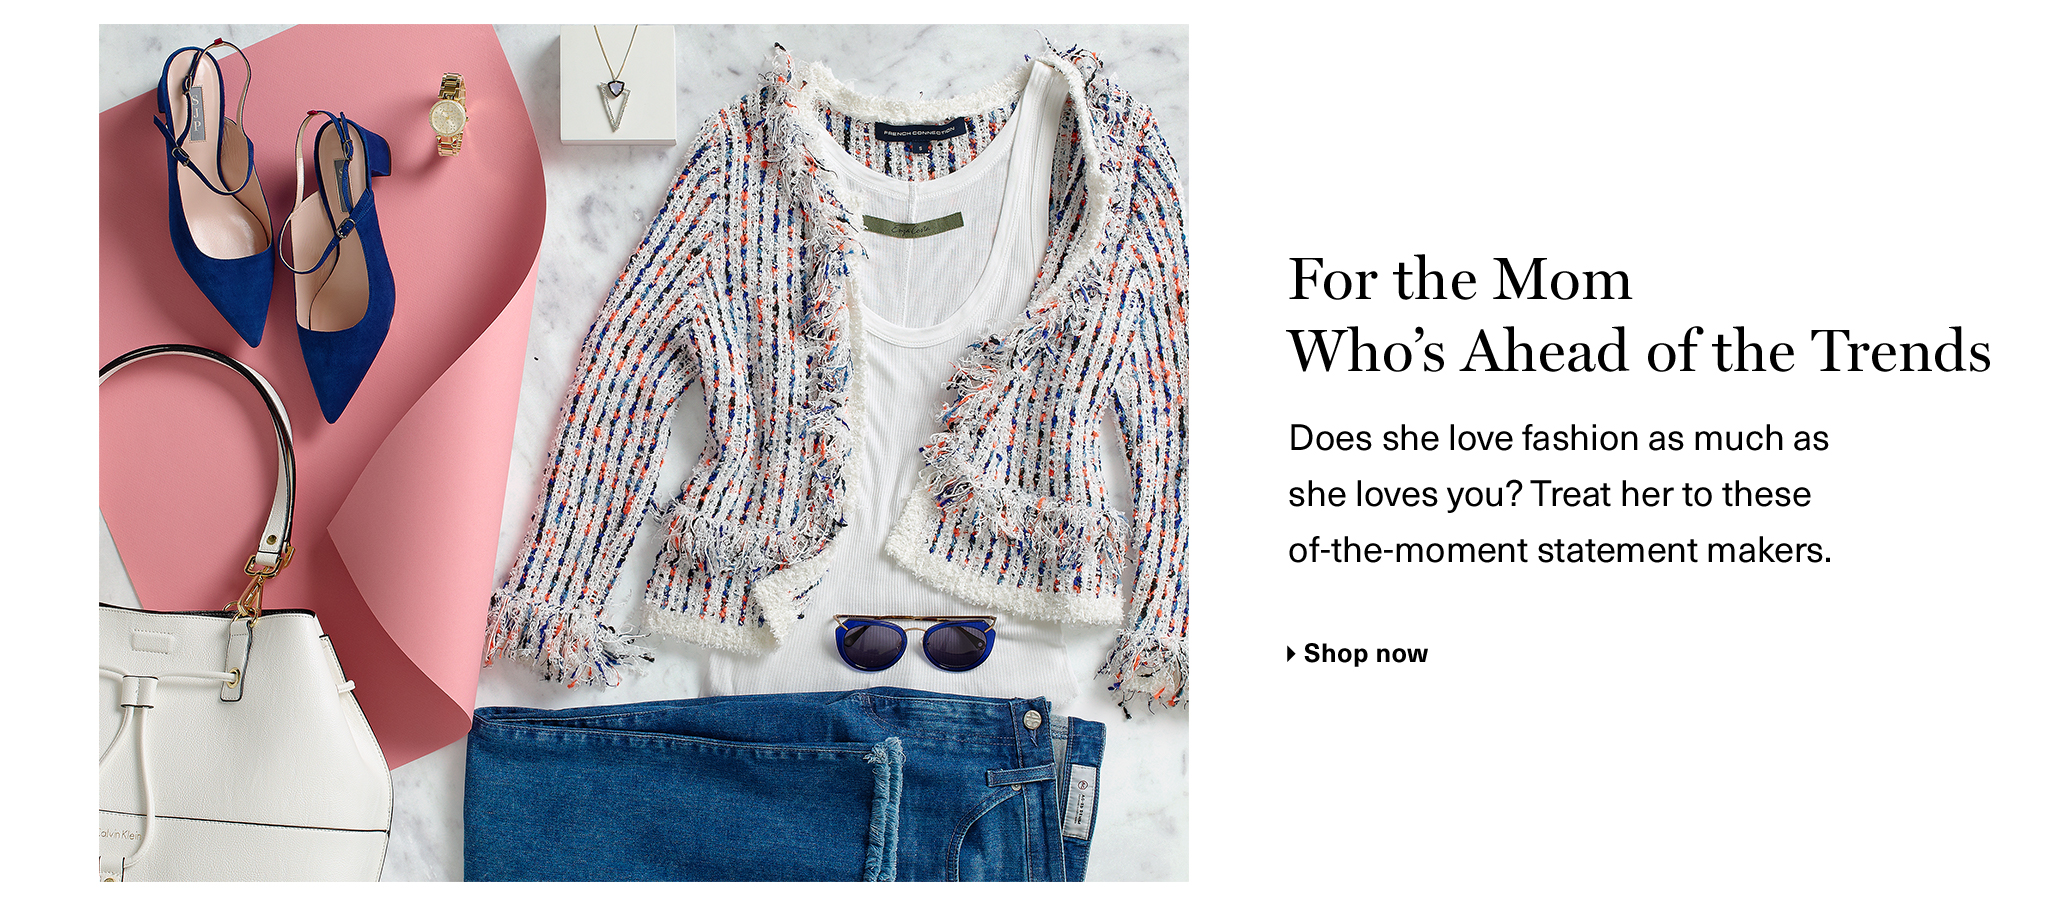 For the Mom who's ahead of the trends